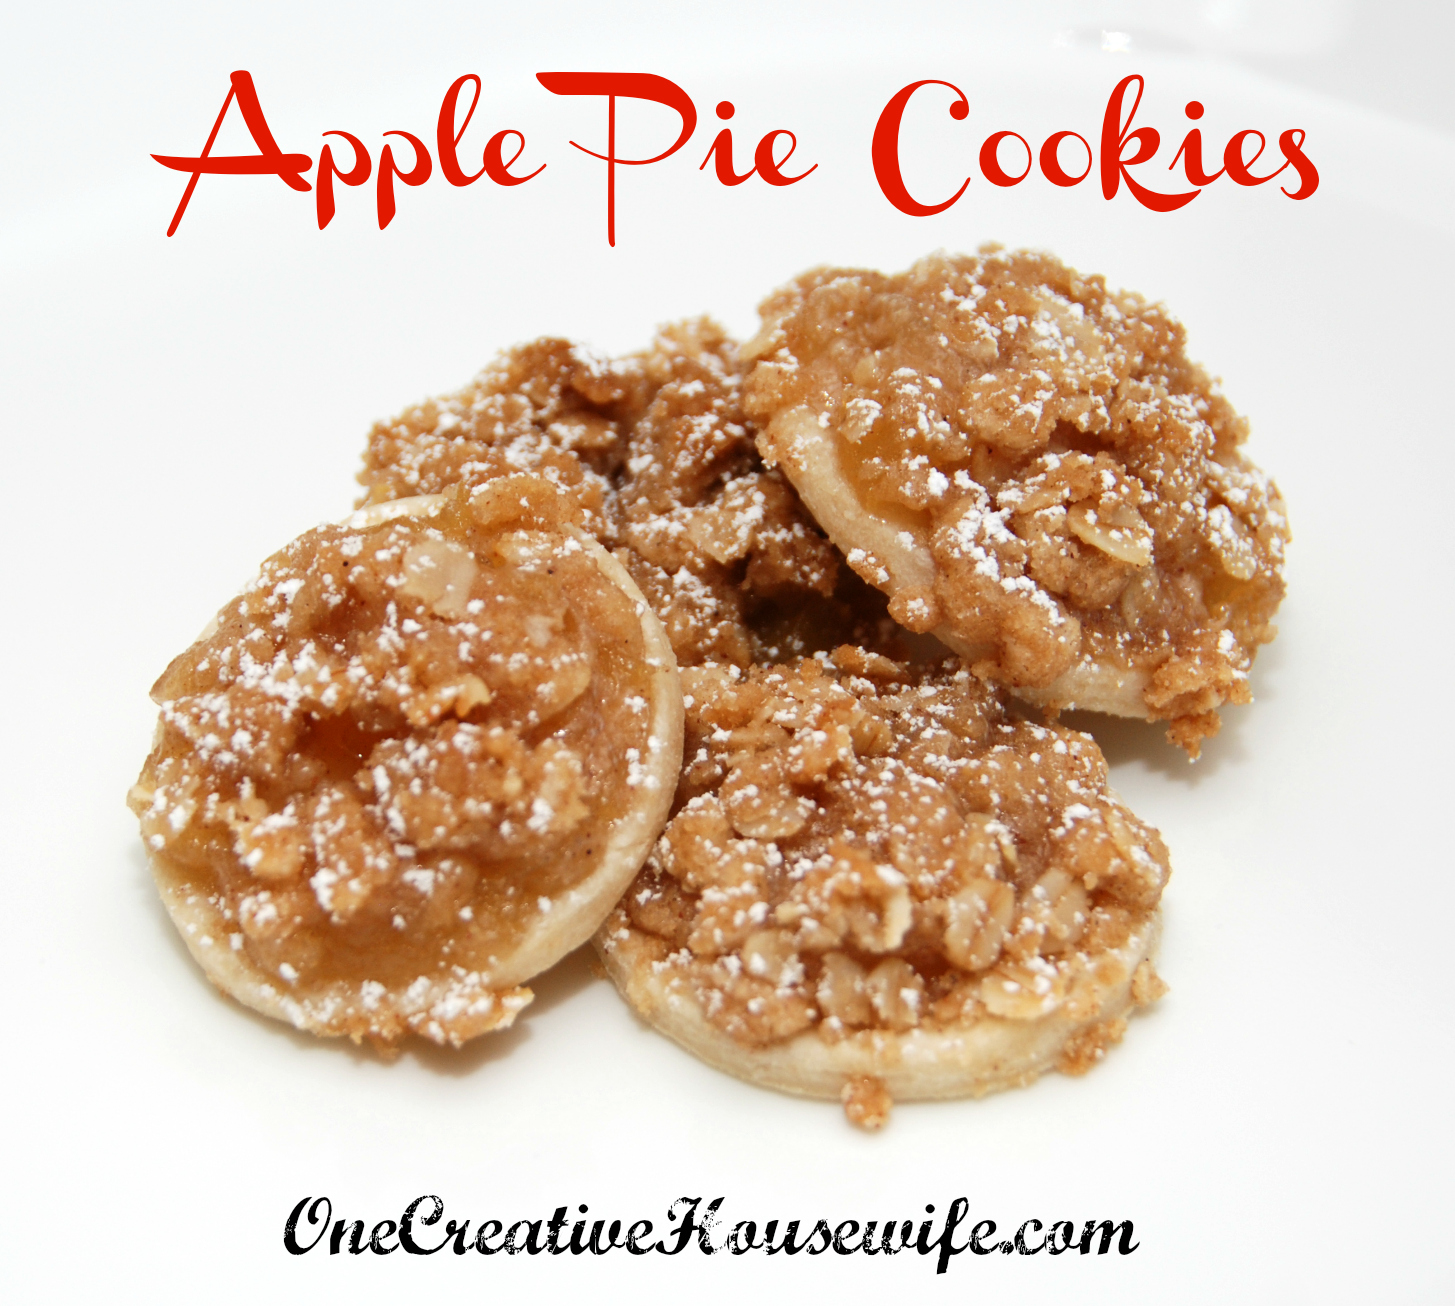 One Creative Housewife: Apple Pie Cookies